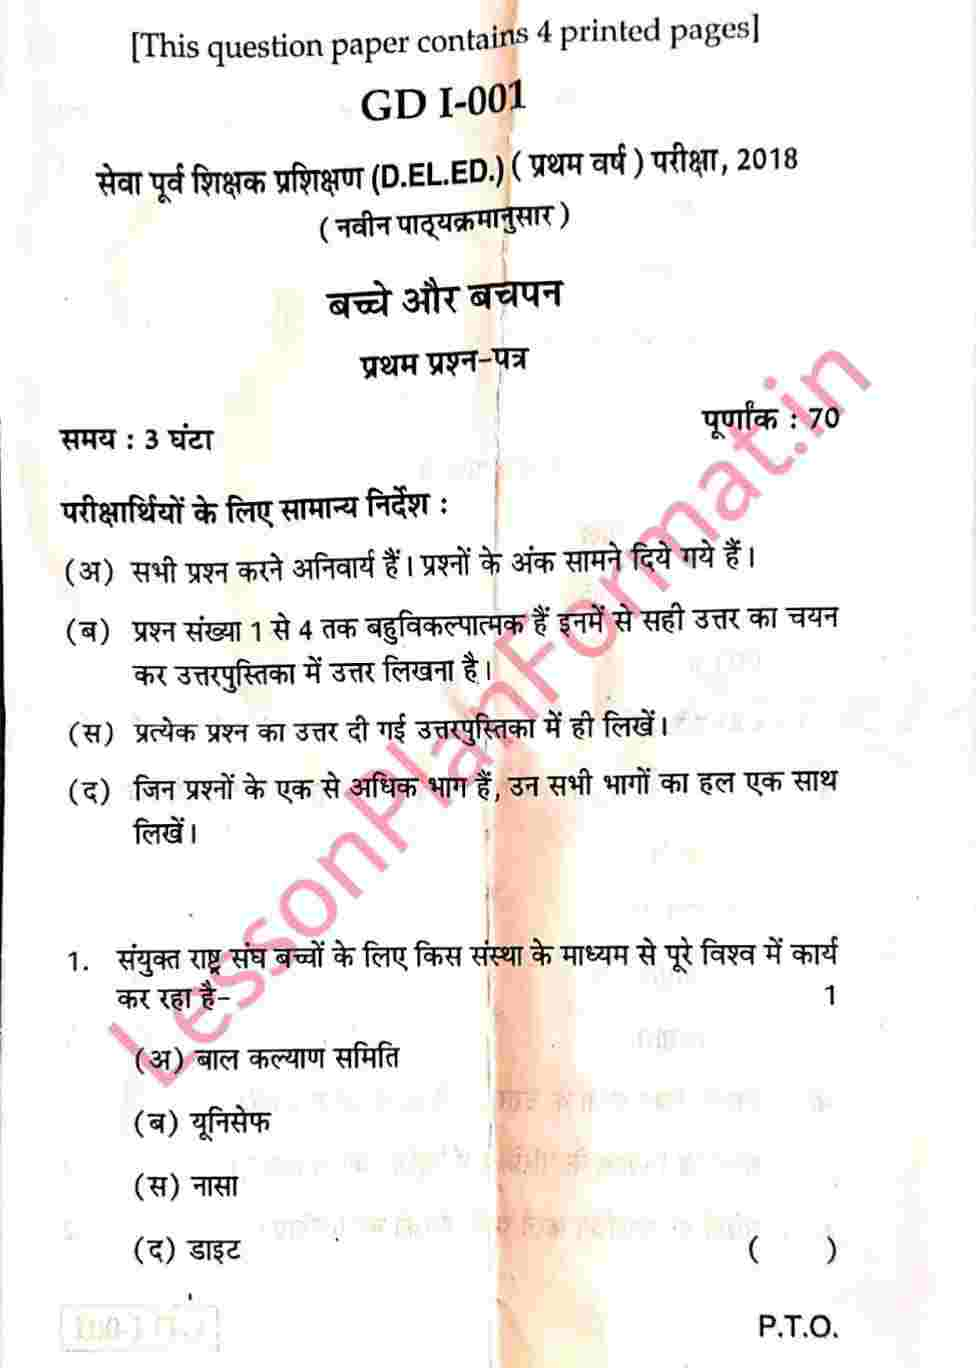 Rajasthan Bstc First Year Previous Year Question Paper 2018 Bachhe or Bachpan